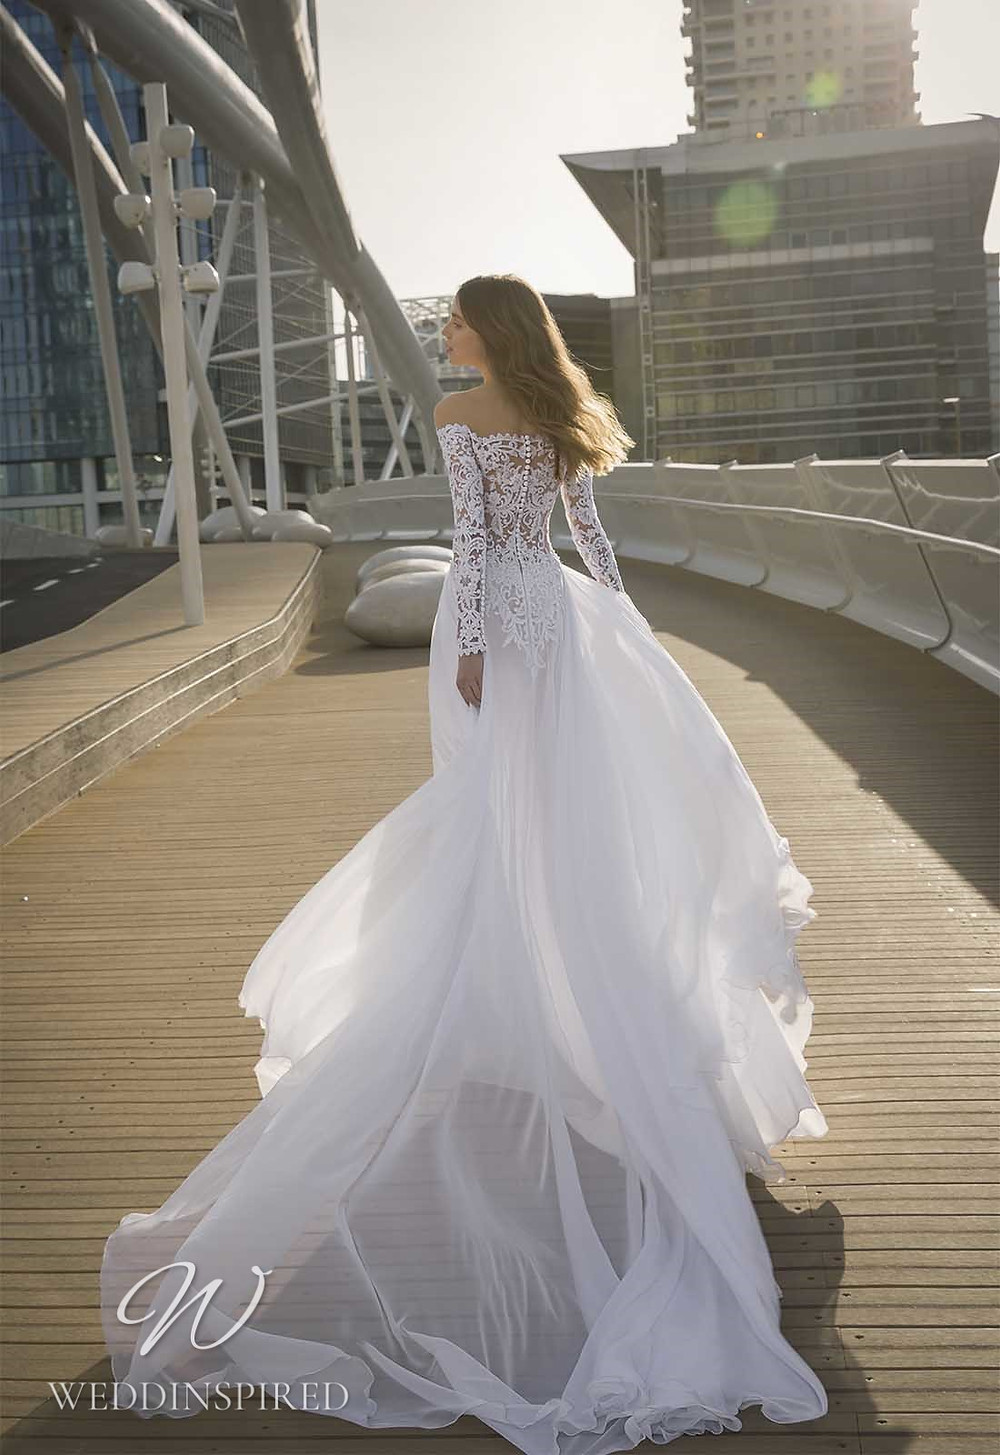 A Pnina Tornai 2021 off the shoulder lace A-line wedding dress with long sleeves